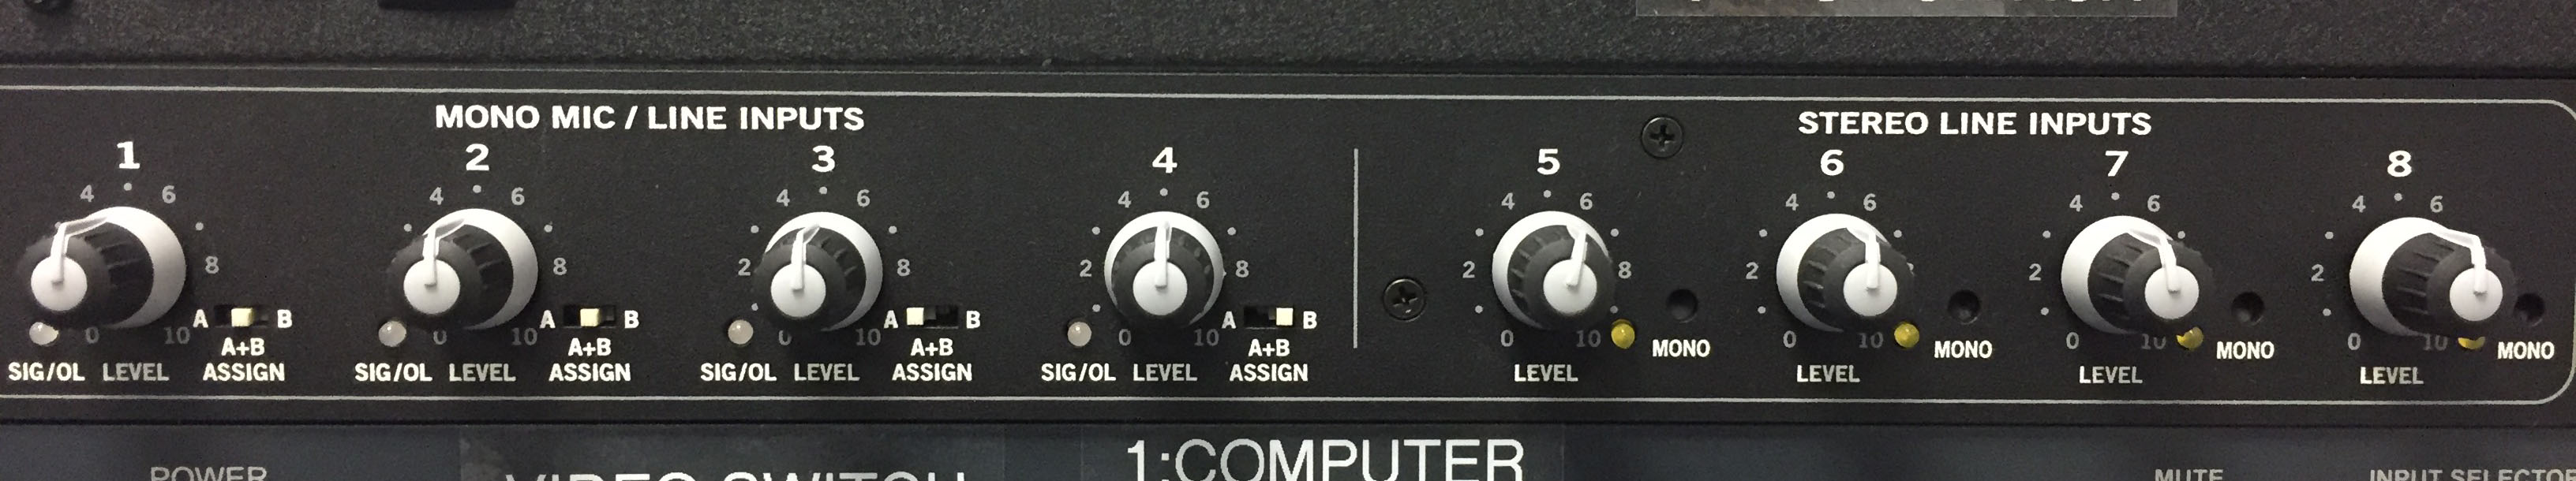 DPL2_Volume_Knobs.jpg